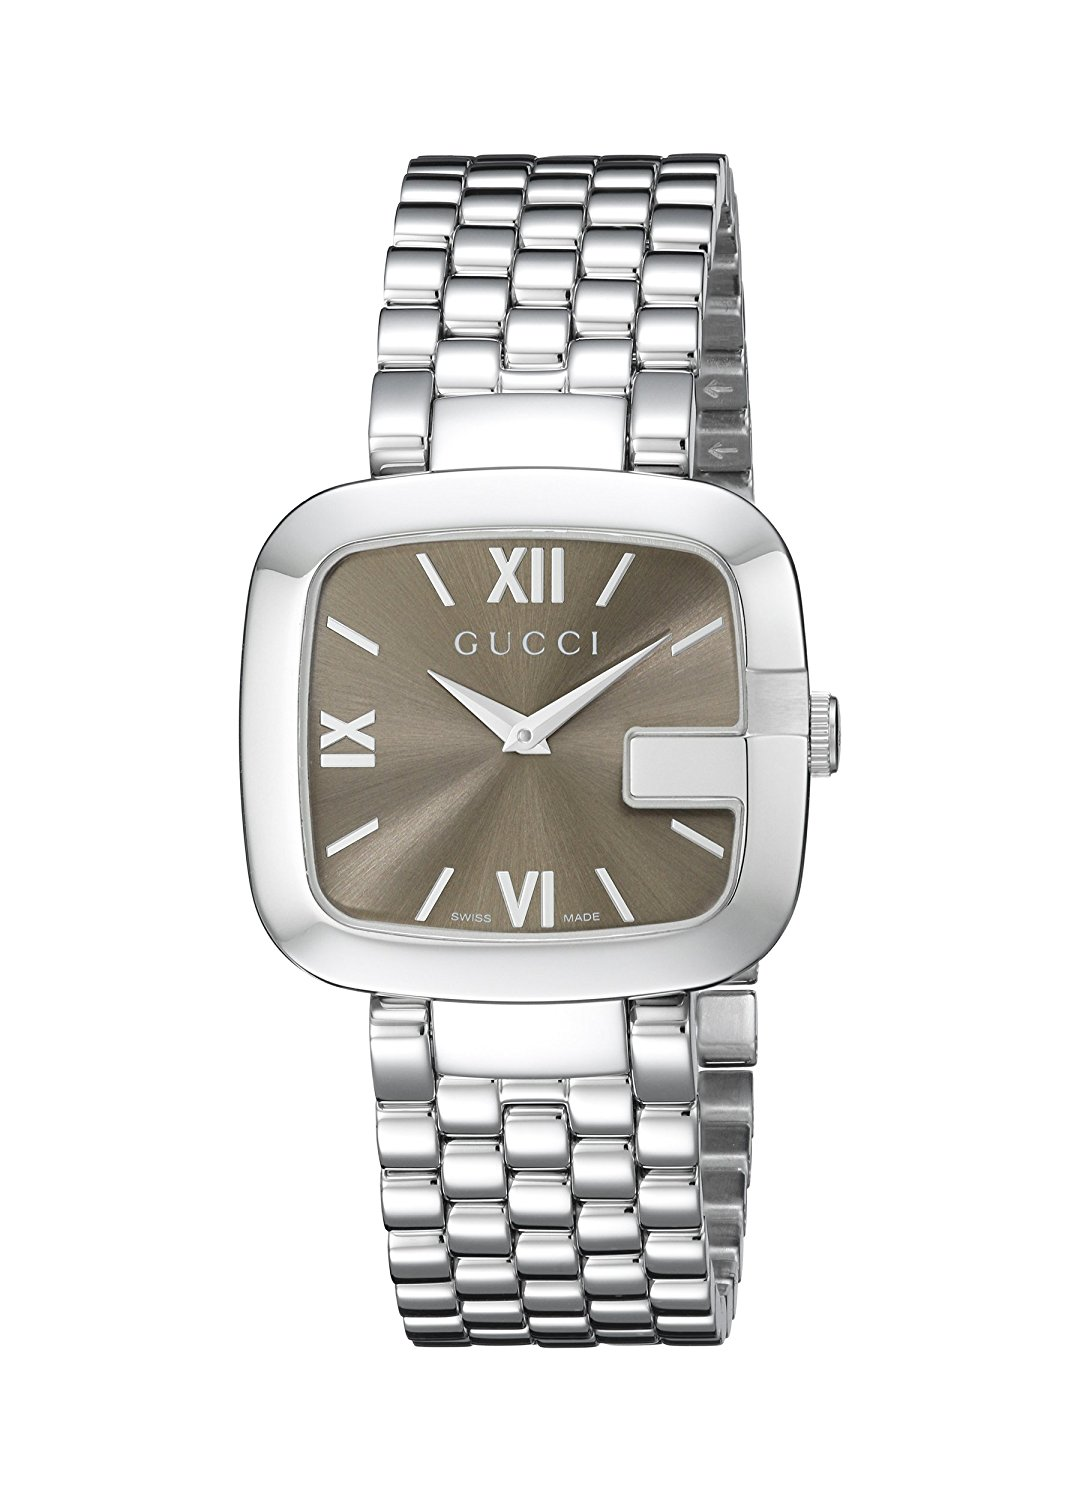 5f53a12ae0c Gucci G-Gucci Stainless Steel Women s Watch(Model YA125410)